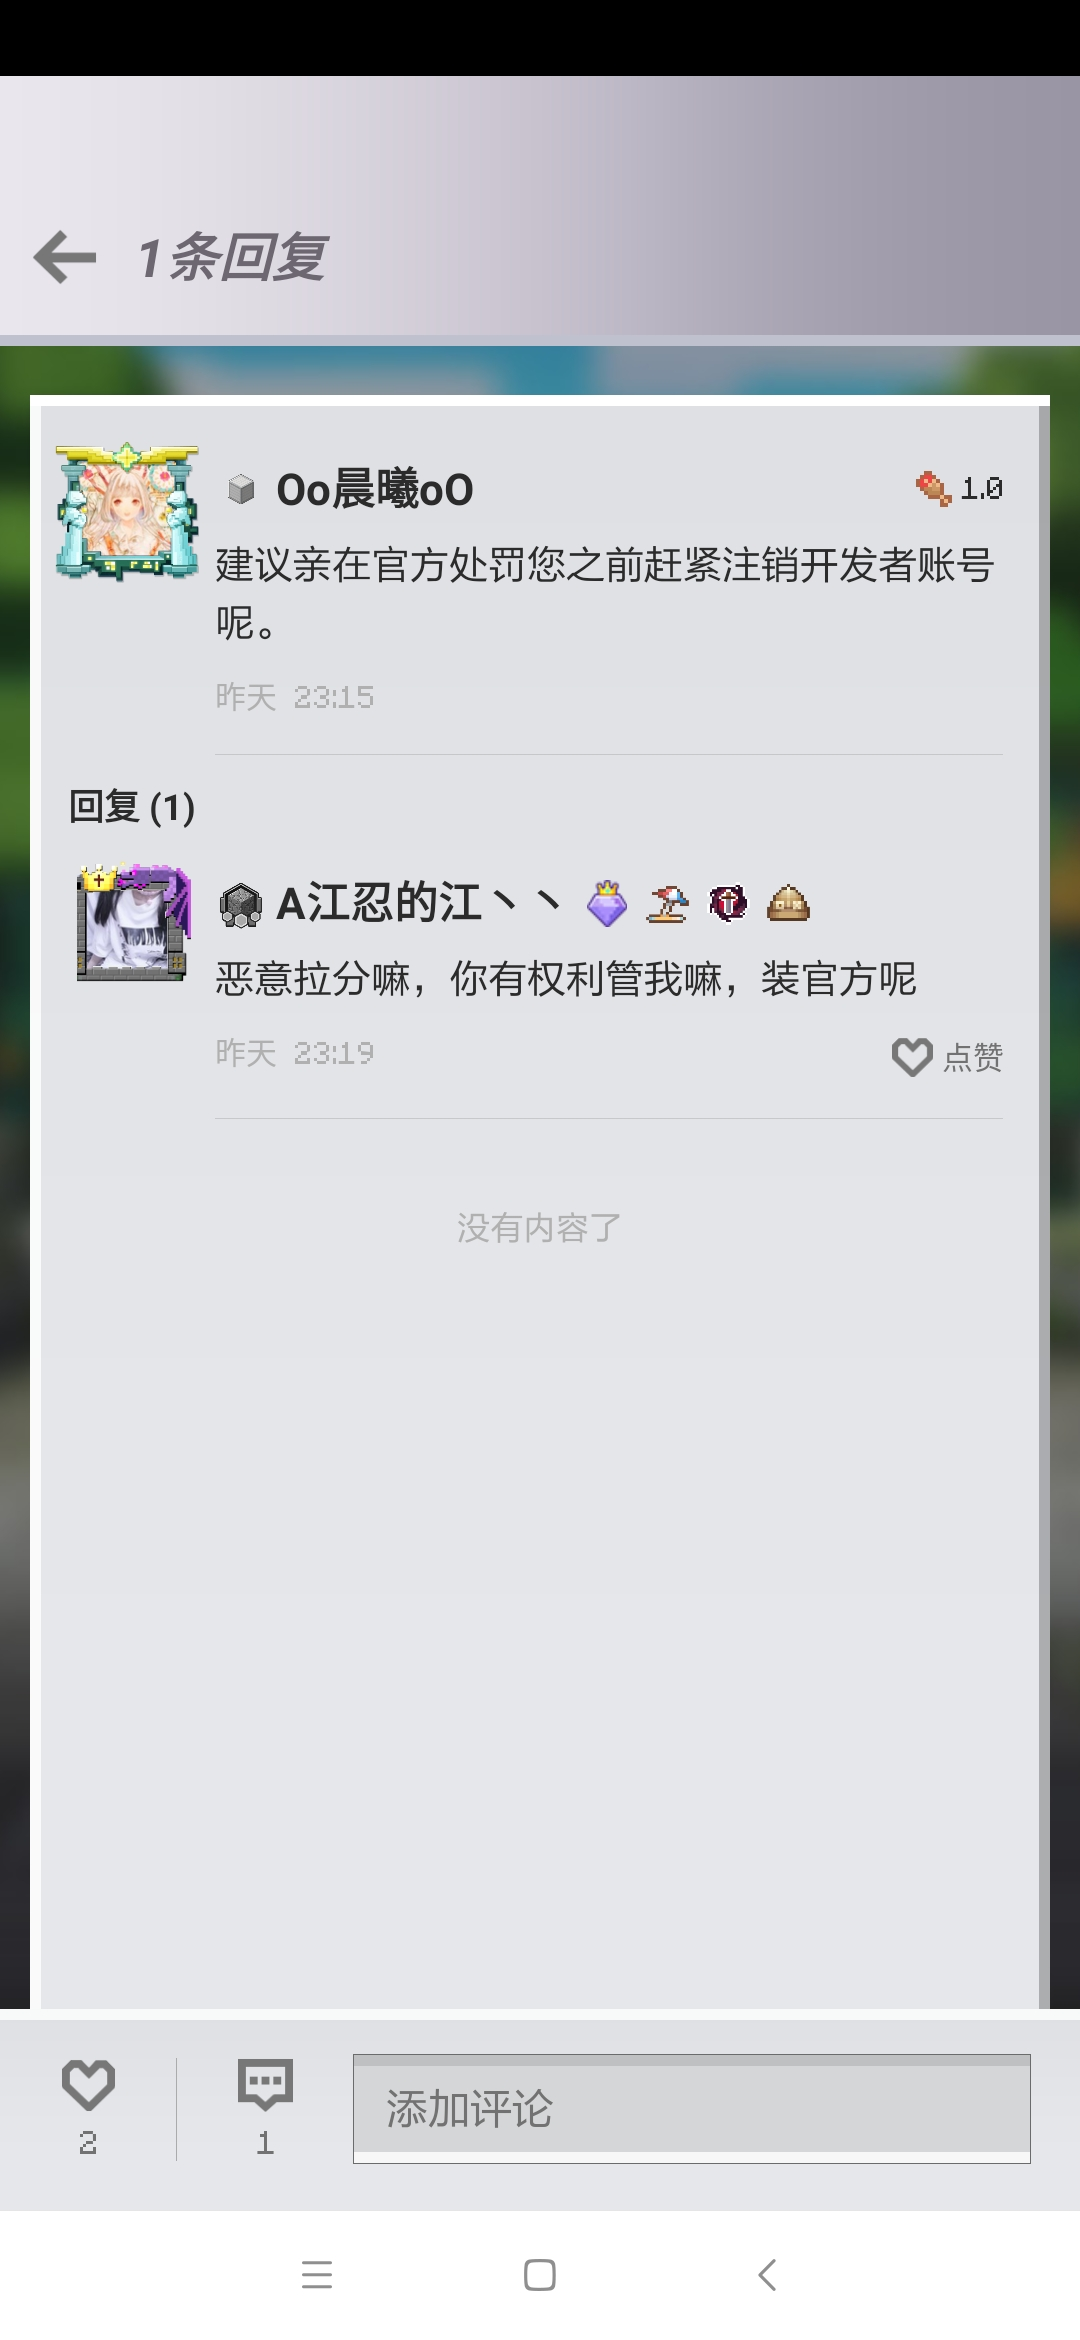 Screenshot_2020-08-26-08-12-19-423_com.netease.x19.jpg